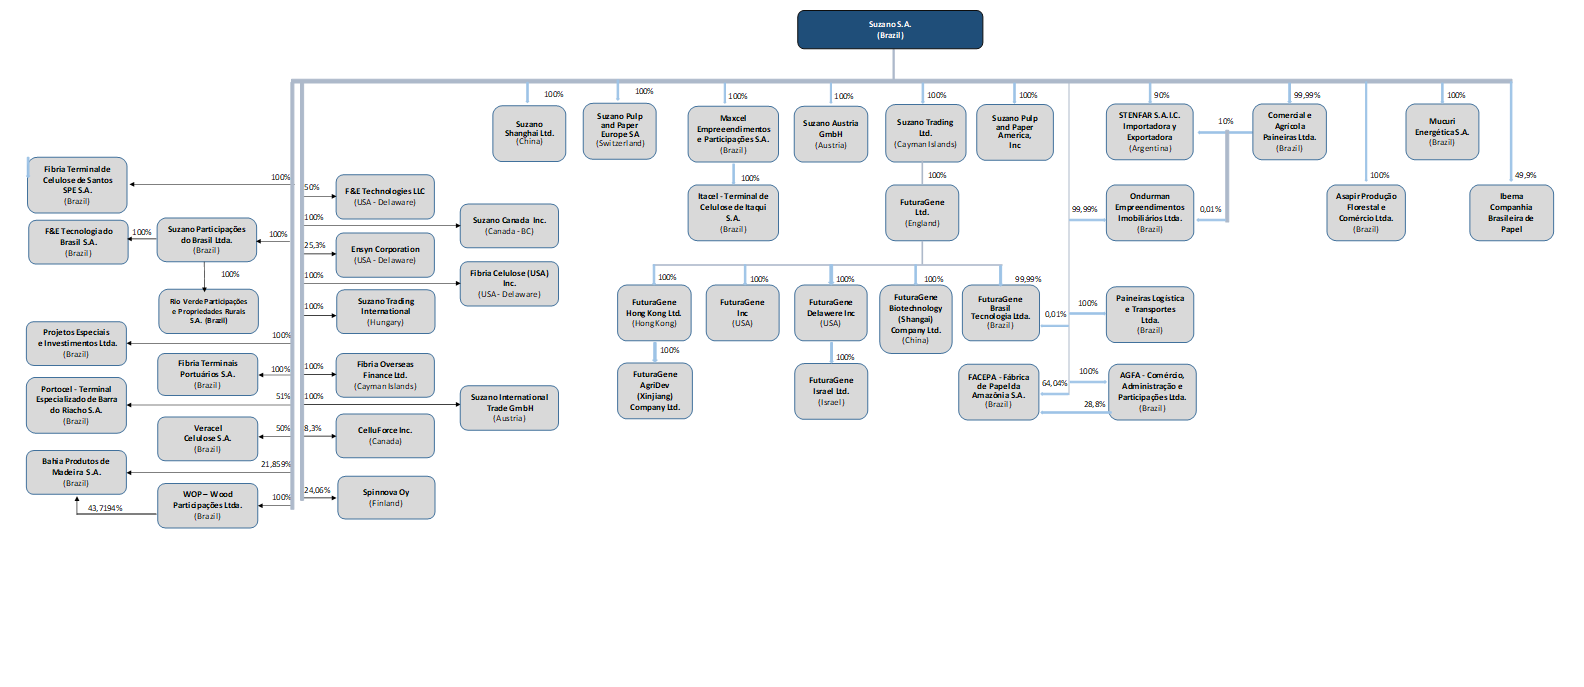 Corporate Structure image